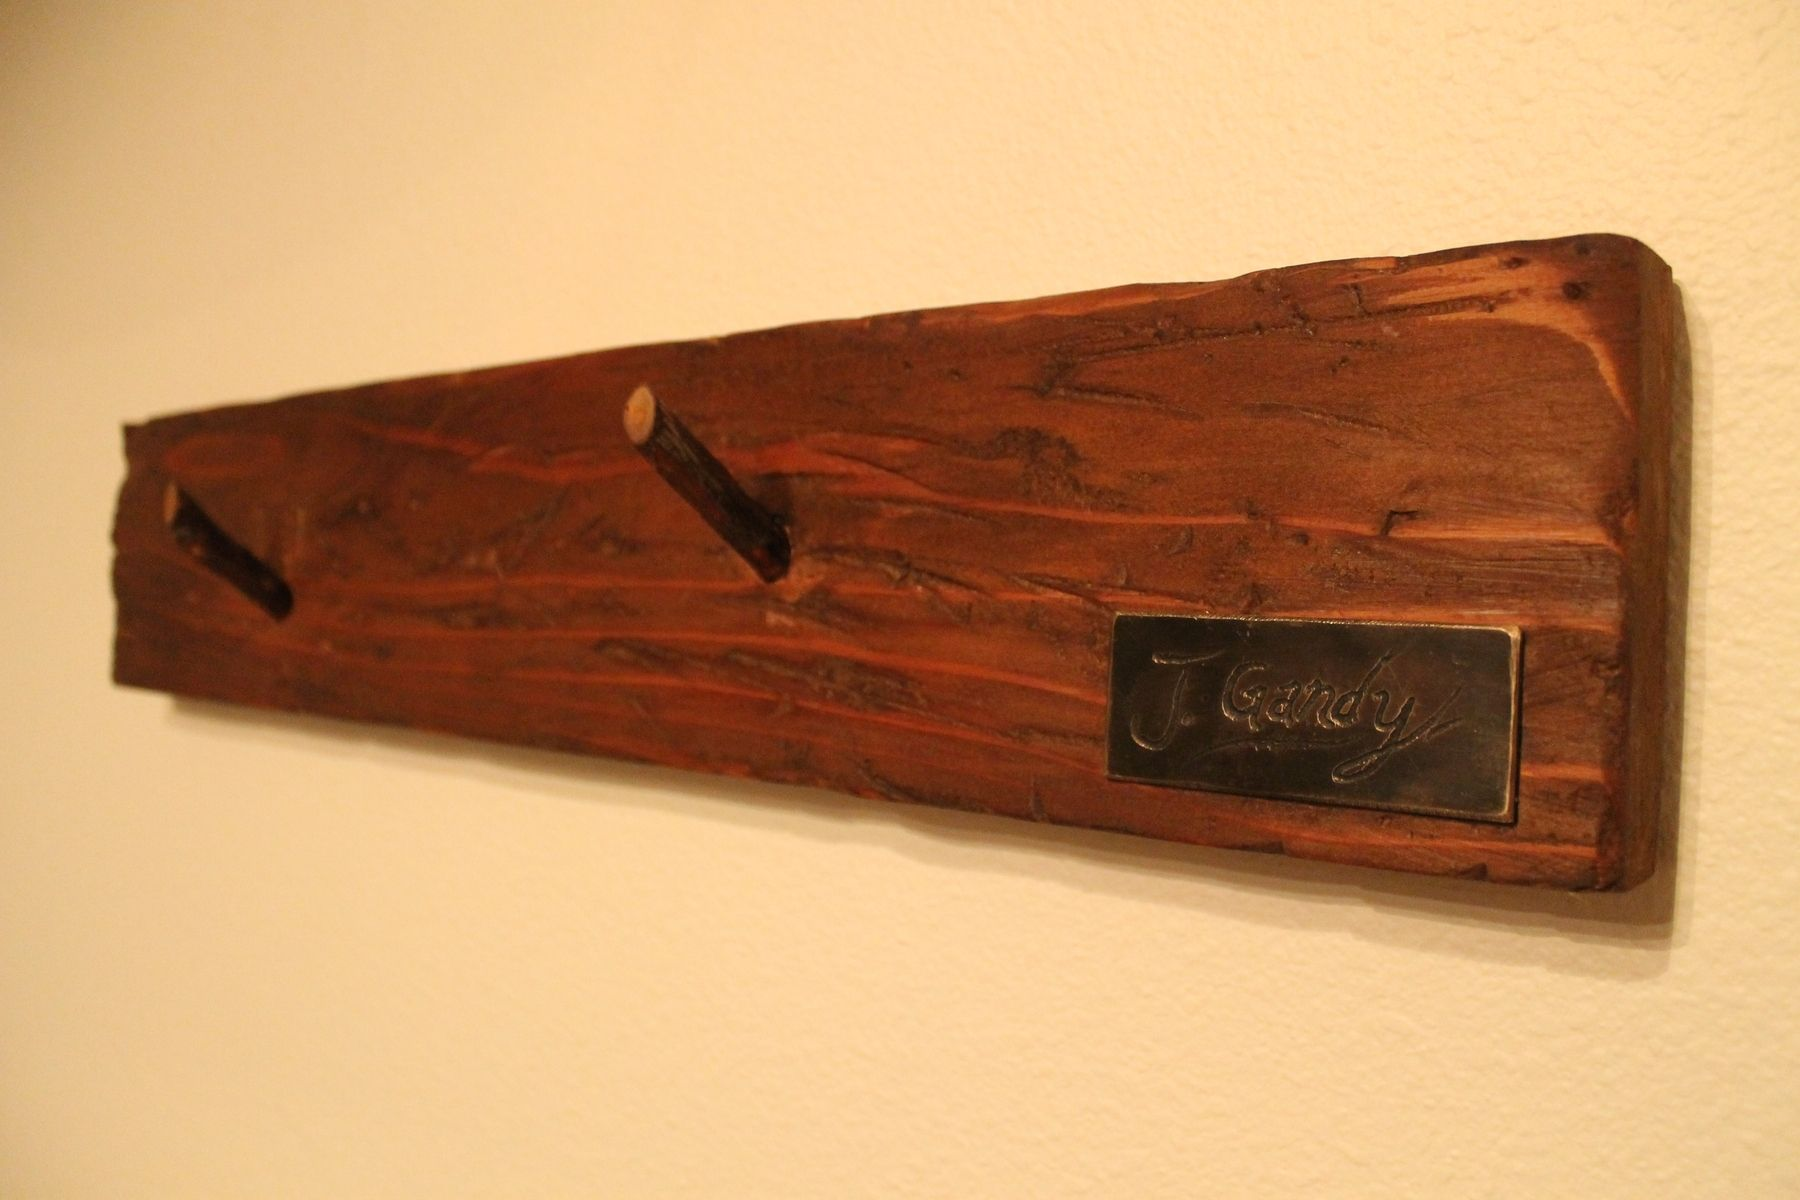 Hand Crafted Personalized Gun Rack By West By Southwest